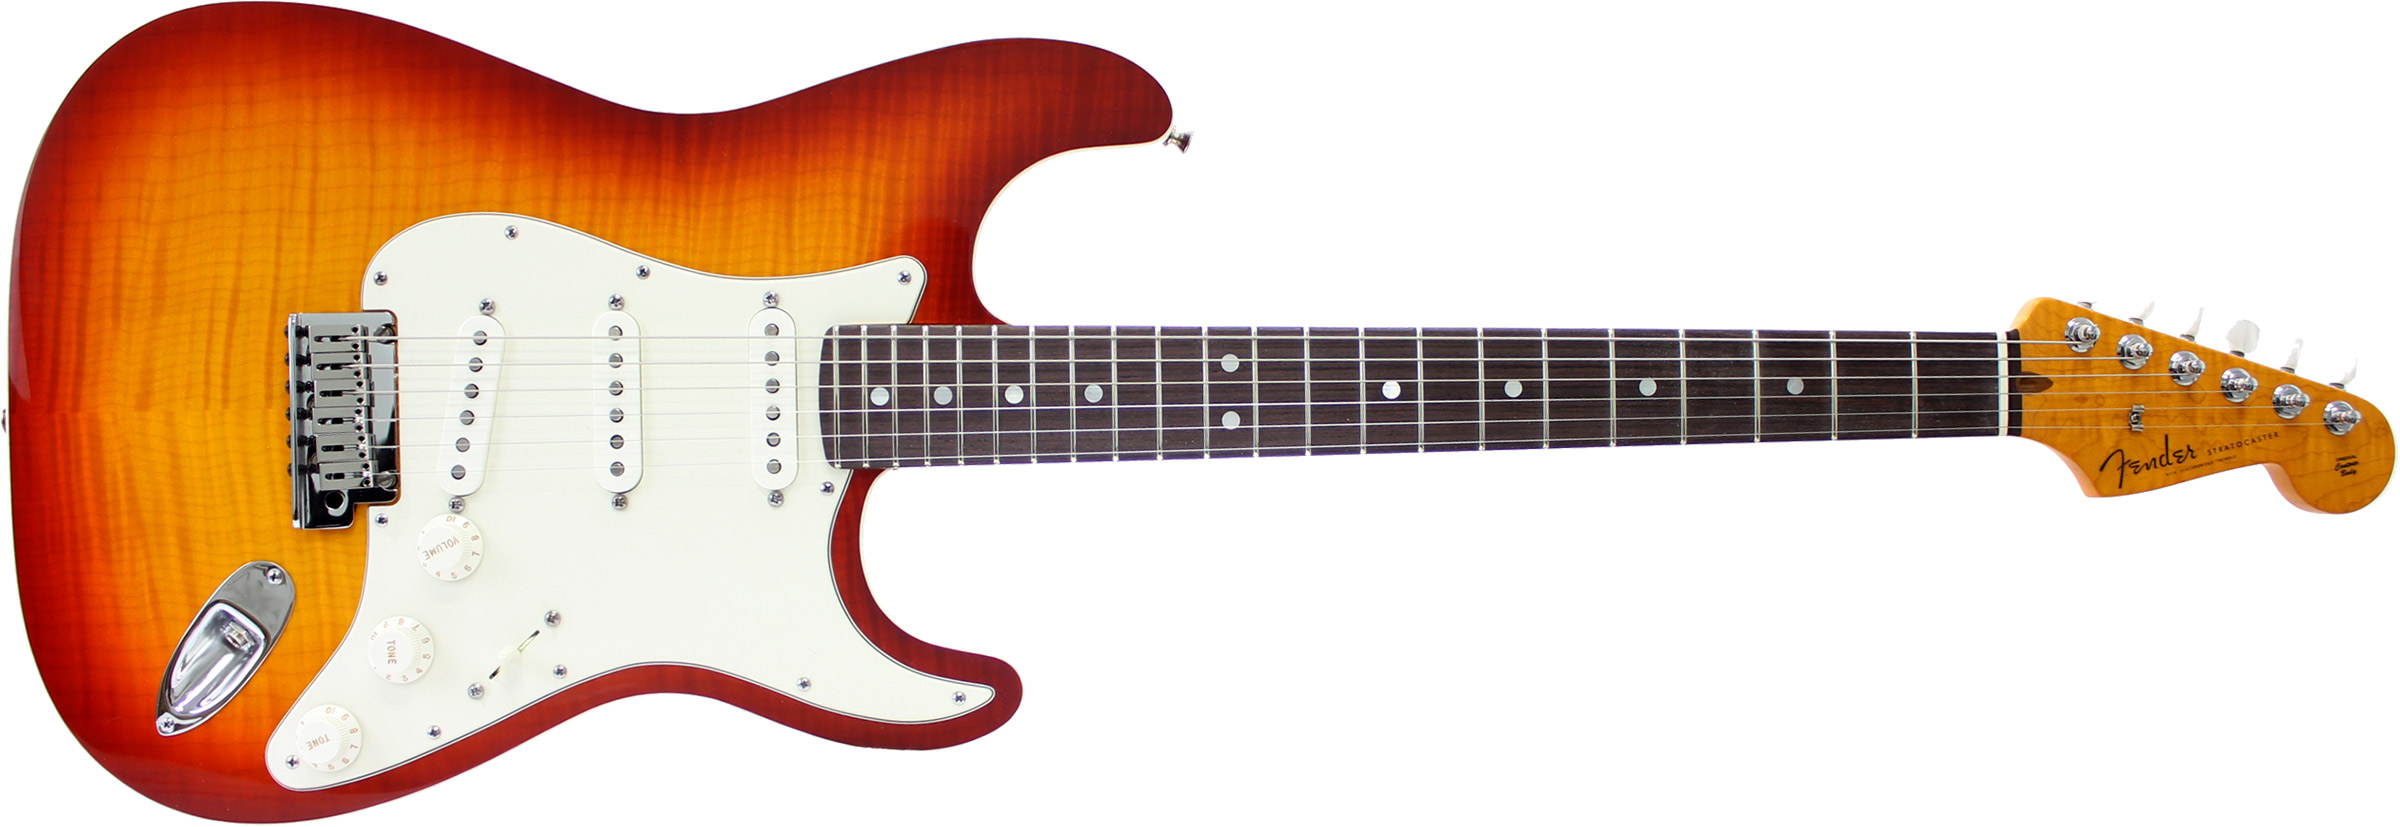 GUITARRA FENDER STRATOCASTER CUSTOM DELUXE SLAB BODY 923-0823-830 CHERRY SUNBURST